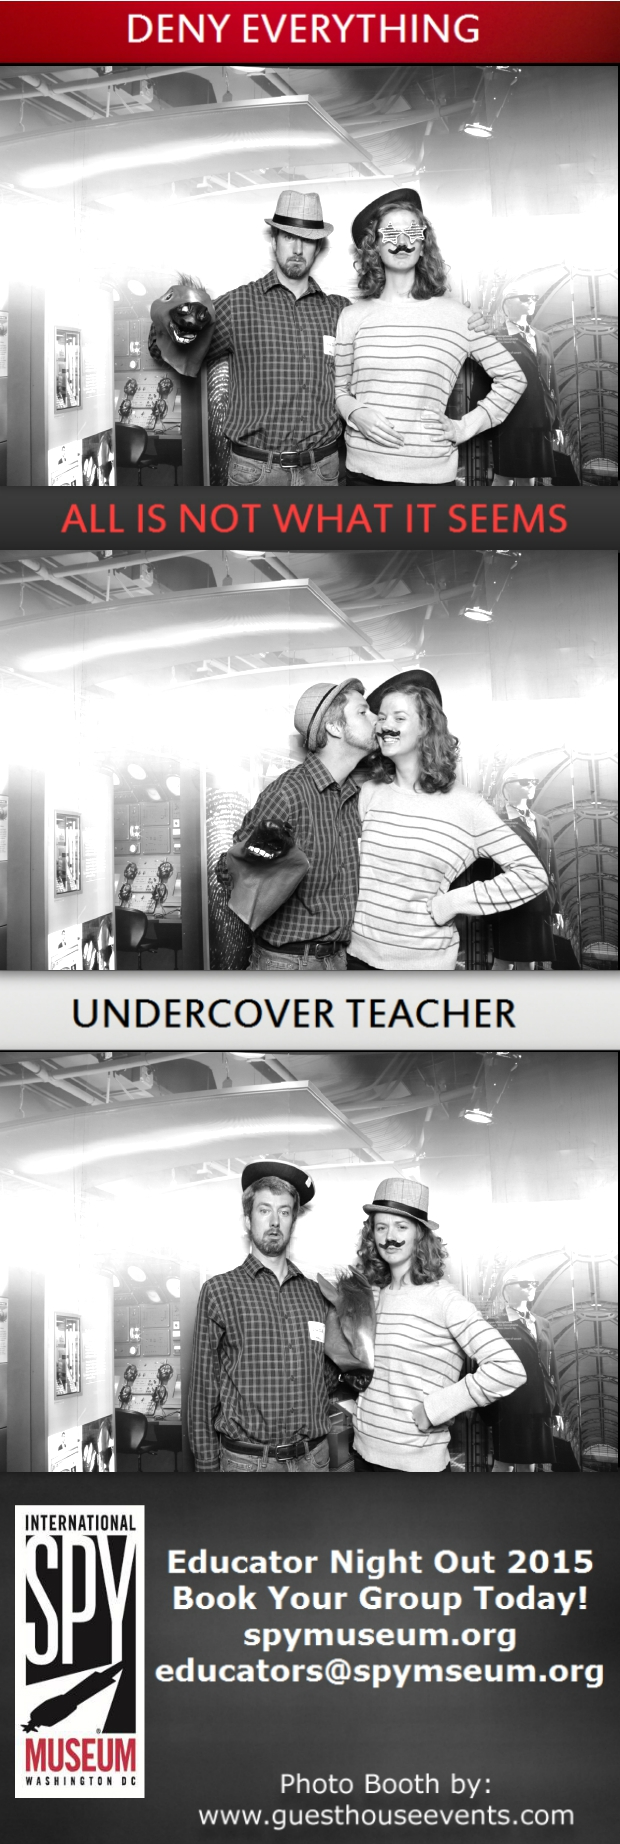 Guest House Events Photo Booth Spy Museum Educator Night Out (22).jpg